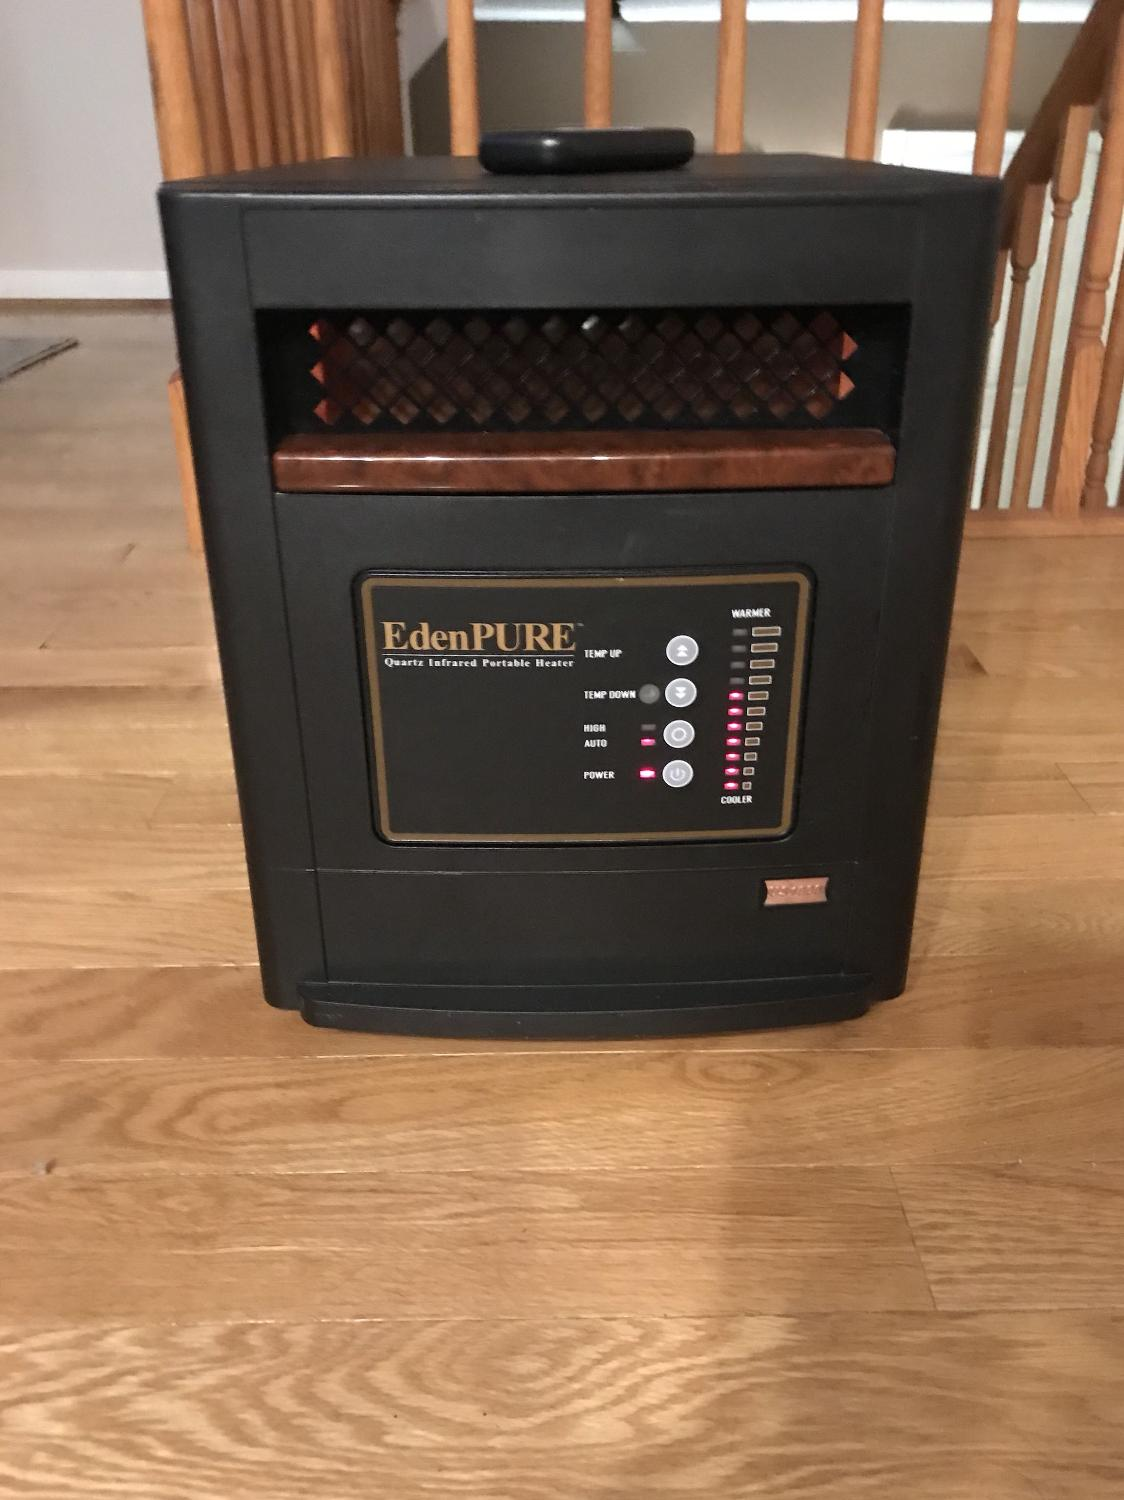 Find More Eden Pure Copper Smart 1000 Space Heater With Remote For